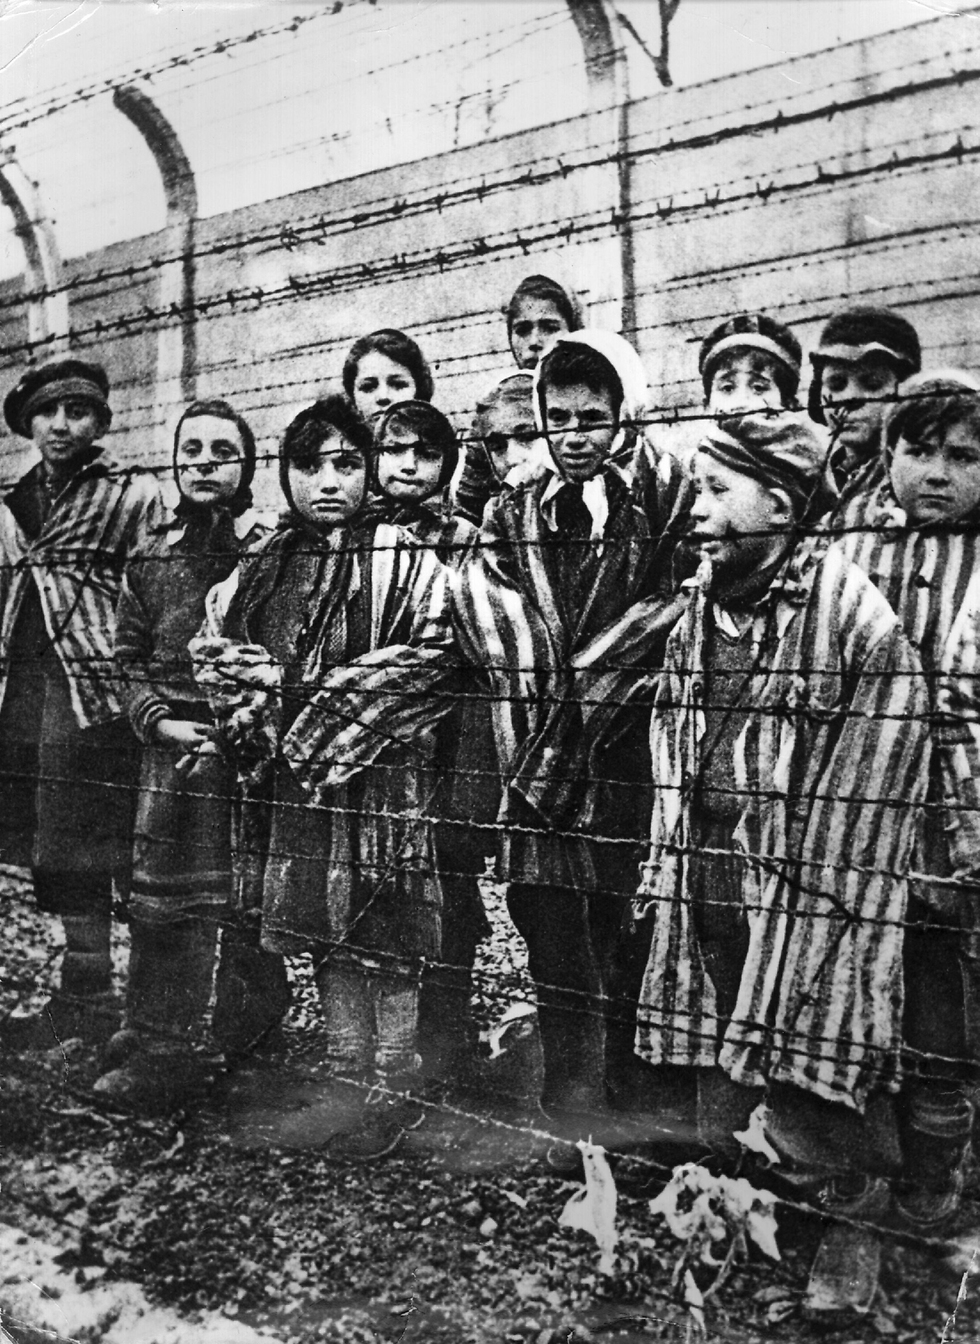 Auschwitz-Birkenau concentration and extermination camp (Photo: Getty Images)